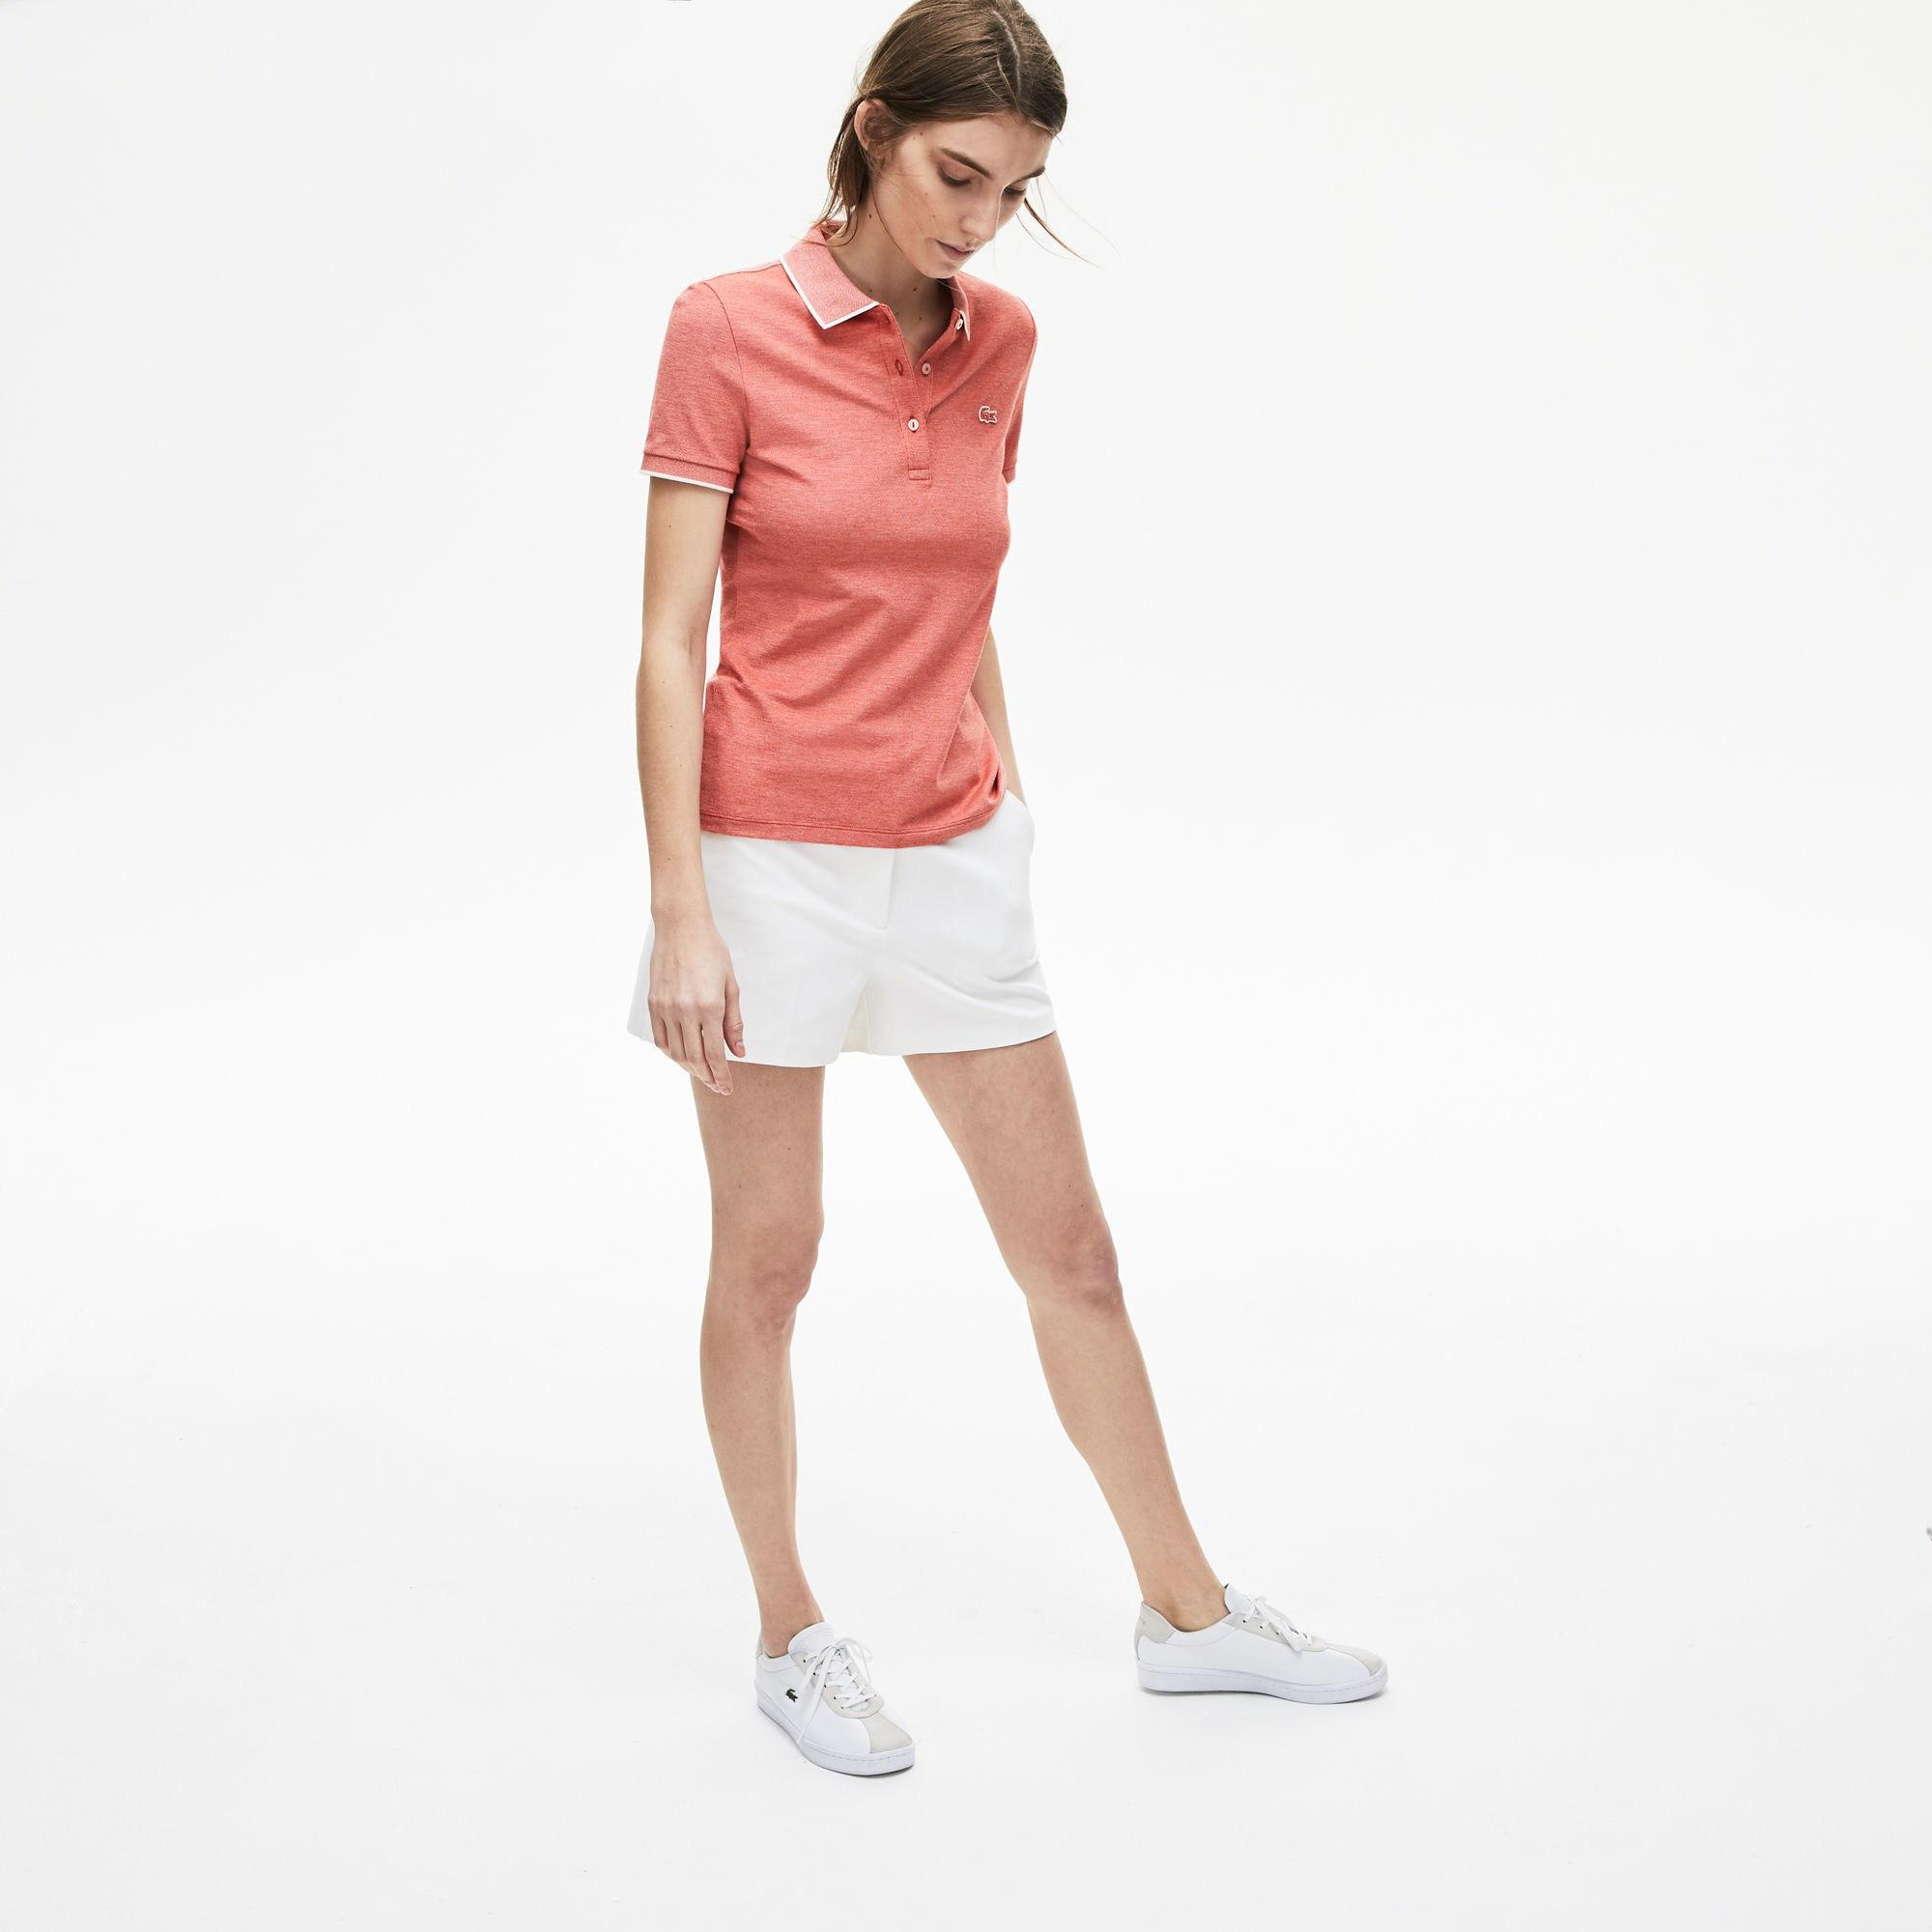 Lacoste Women's Short Sleeve Polo